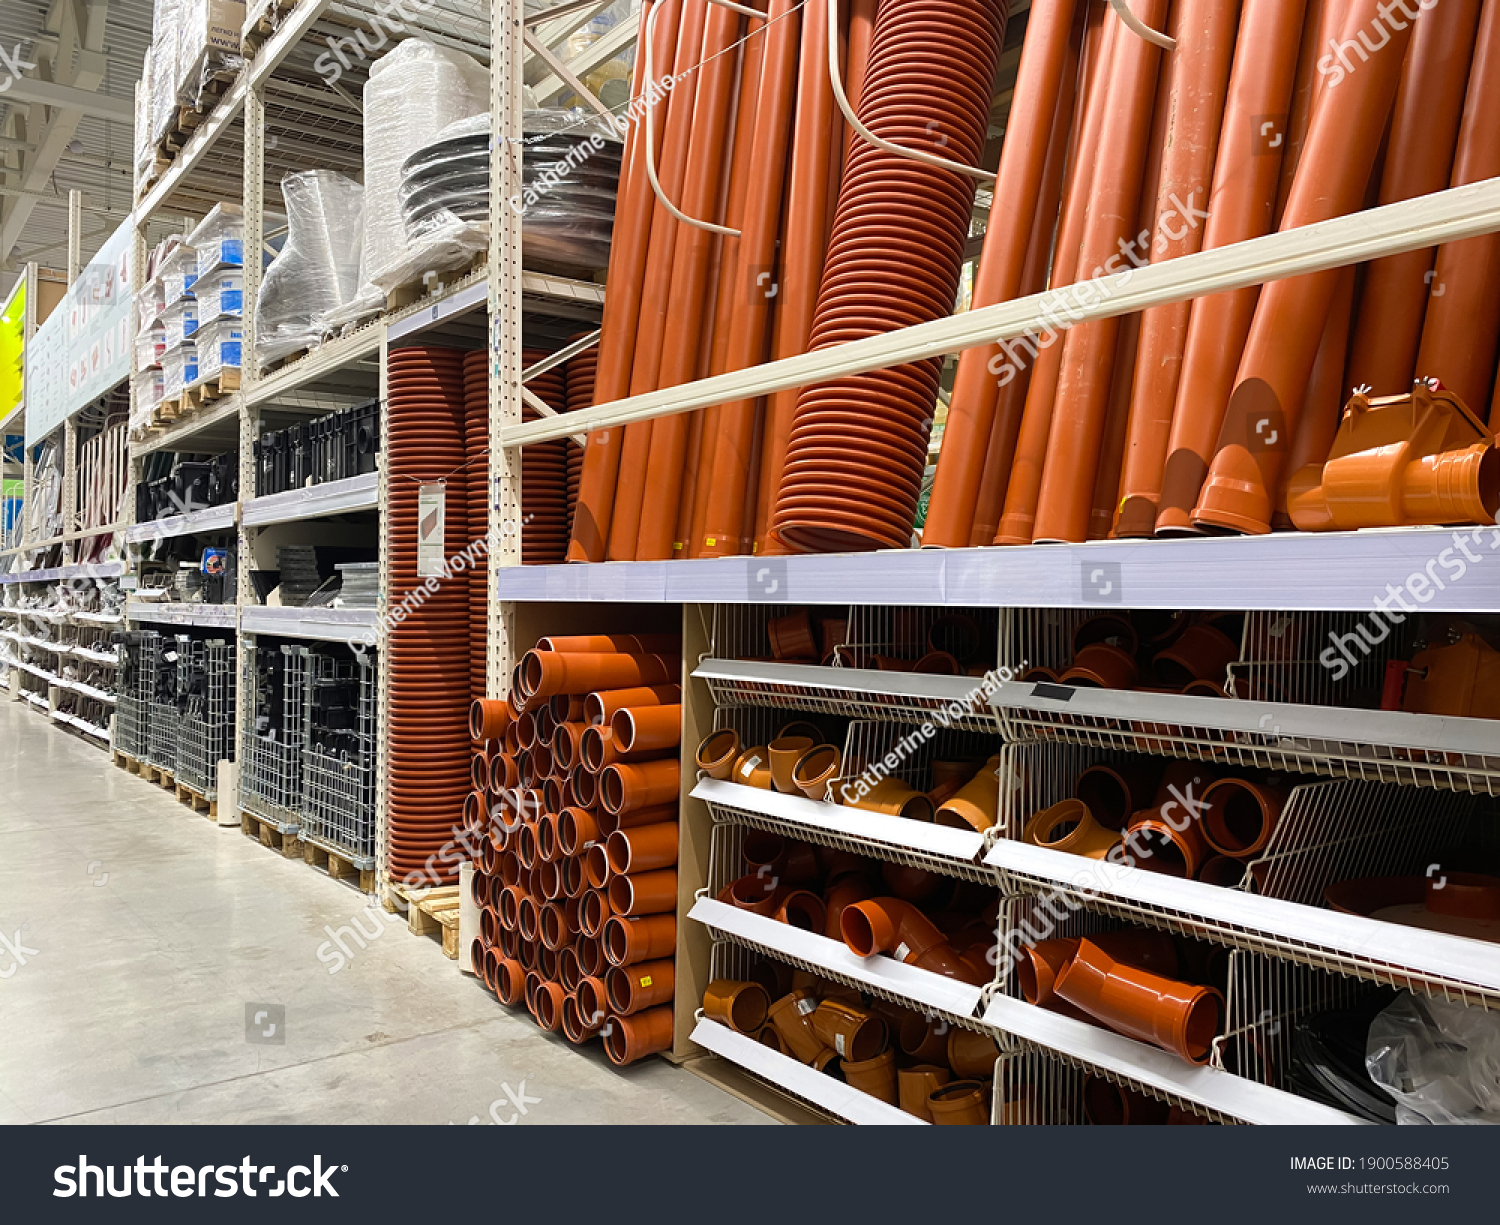 Assortment of a hardware store, pipes. Building materials and manufactured goods are stacked and put up for sale in a hardware store #1900588405